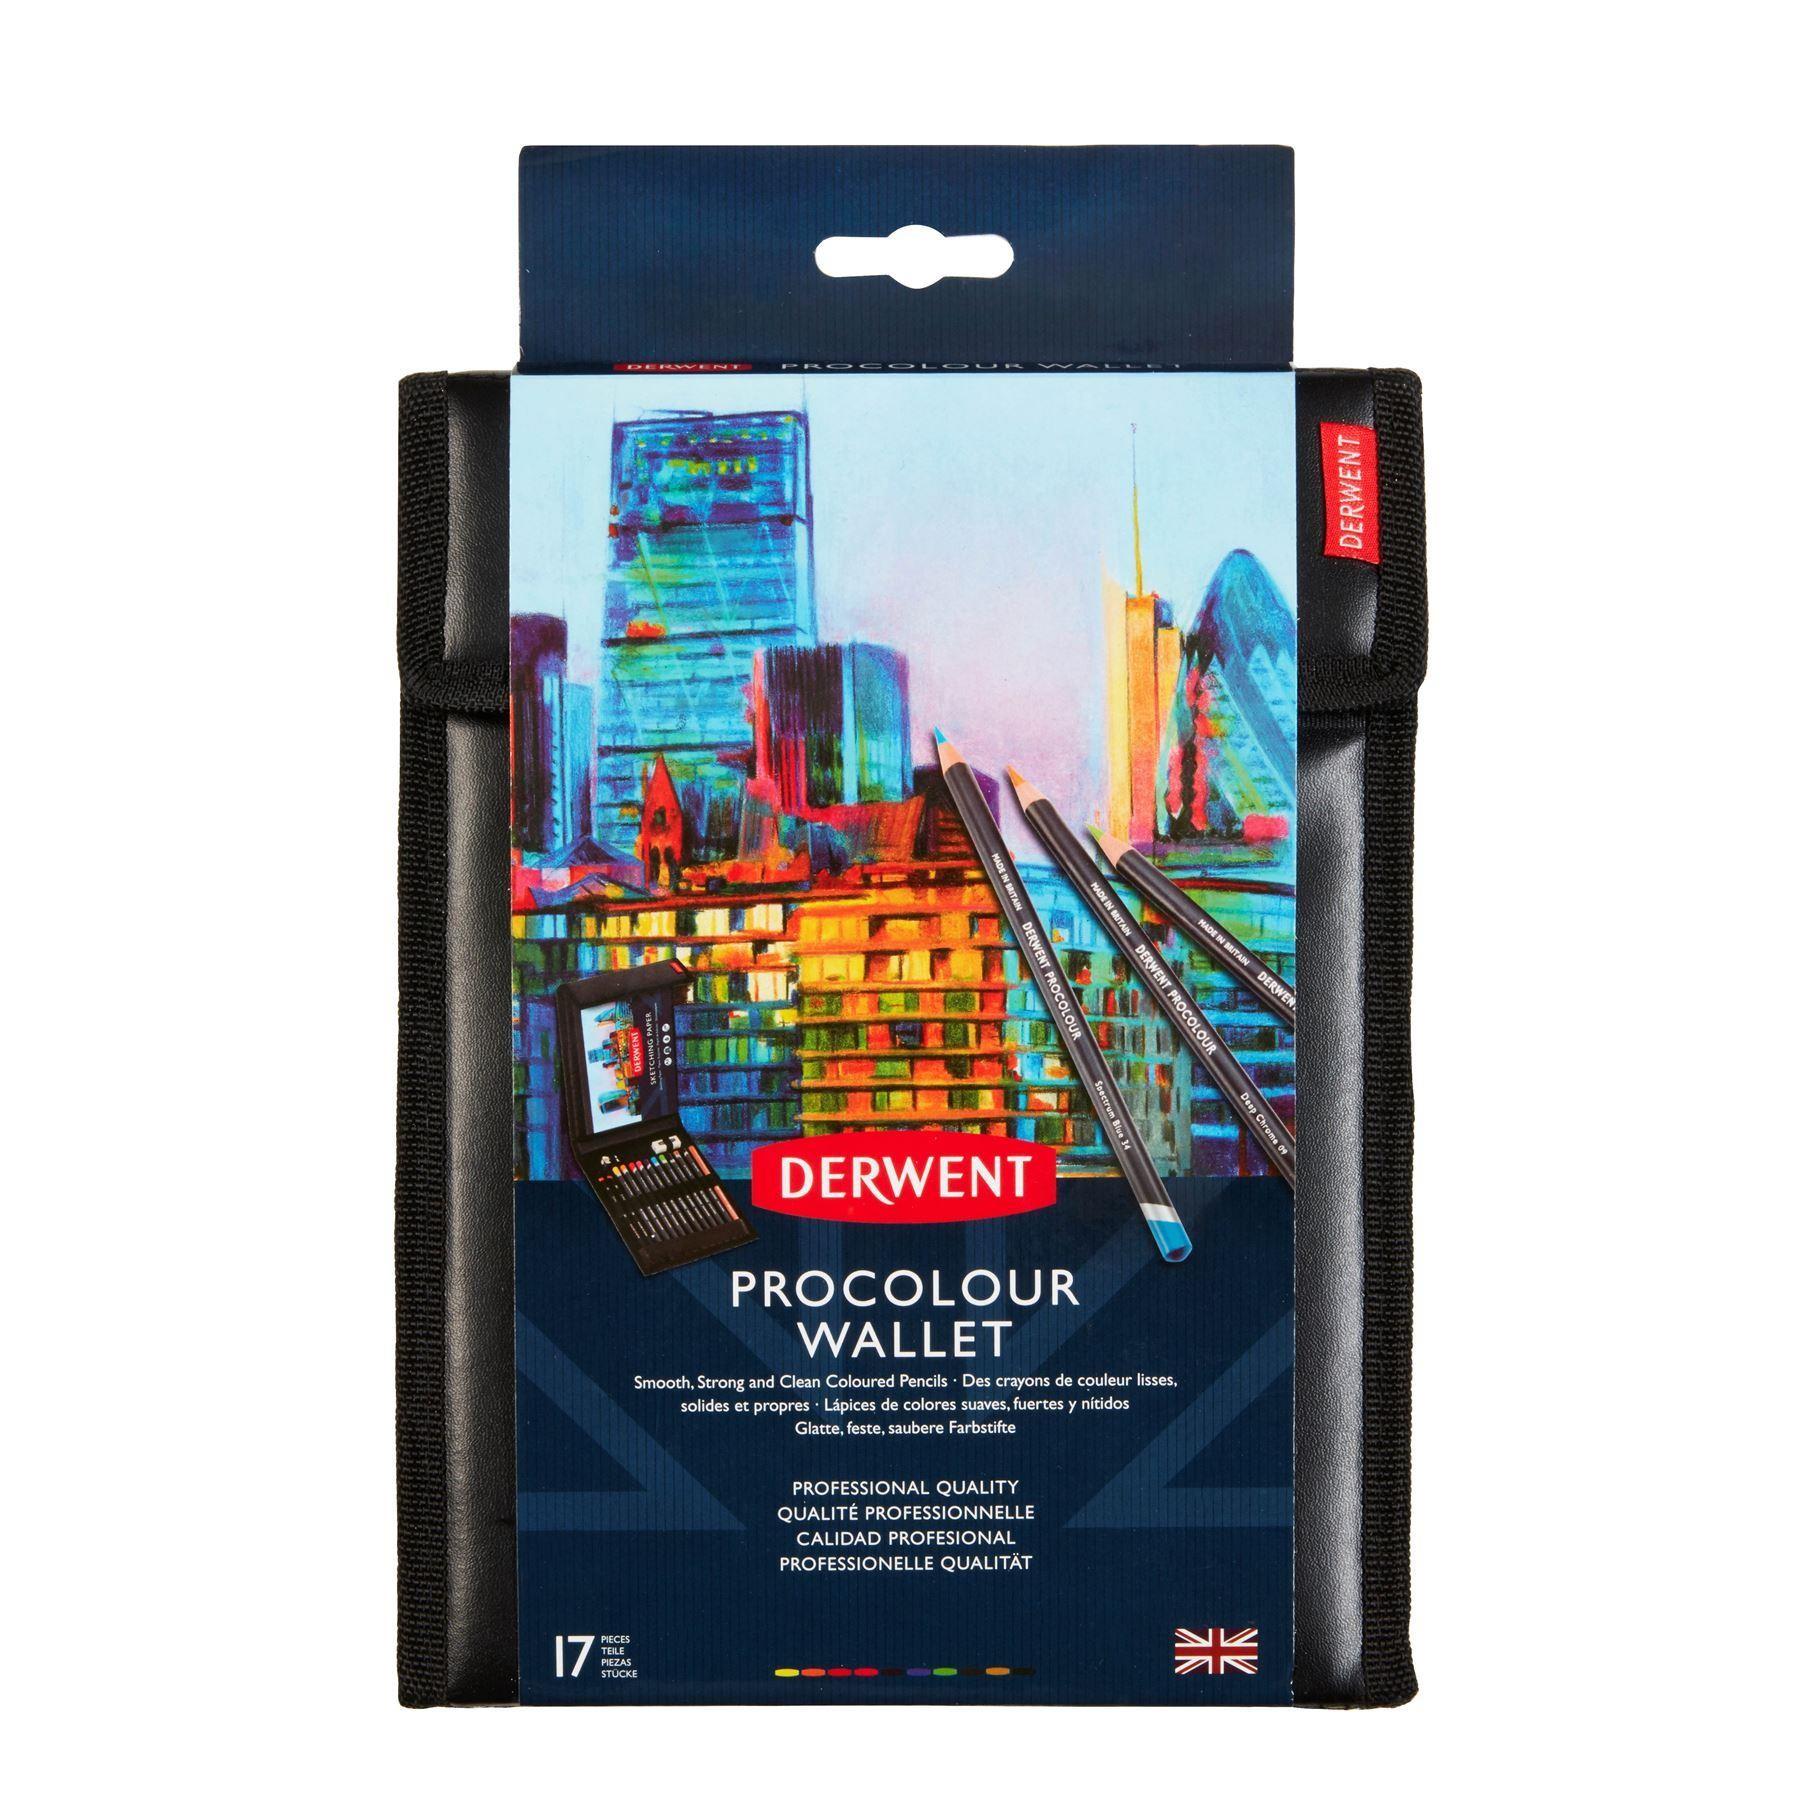 Derwent procolour wallet set for artists